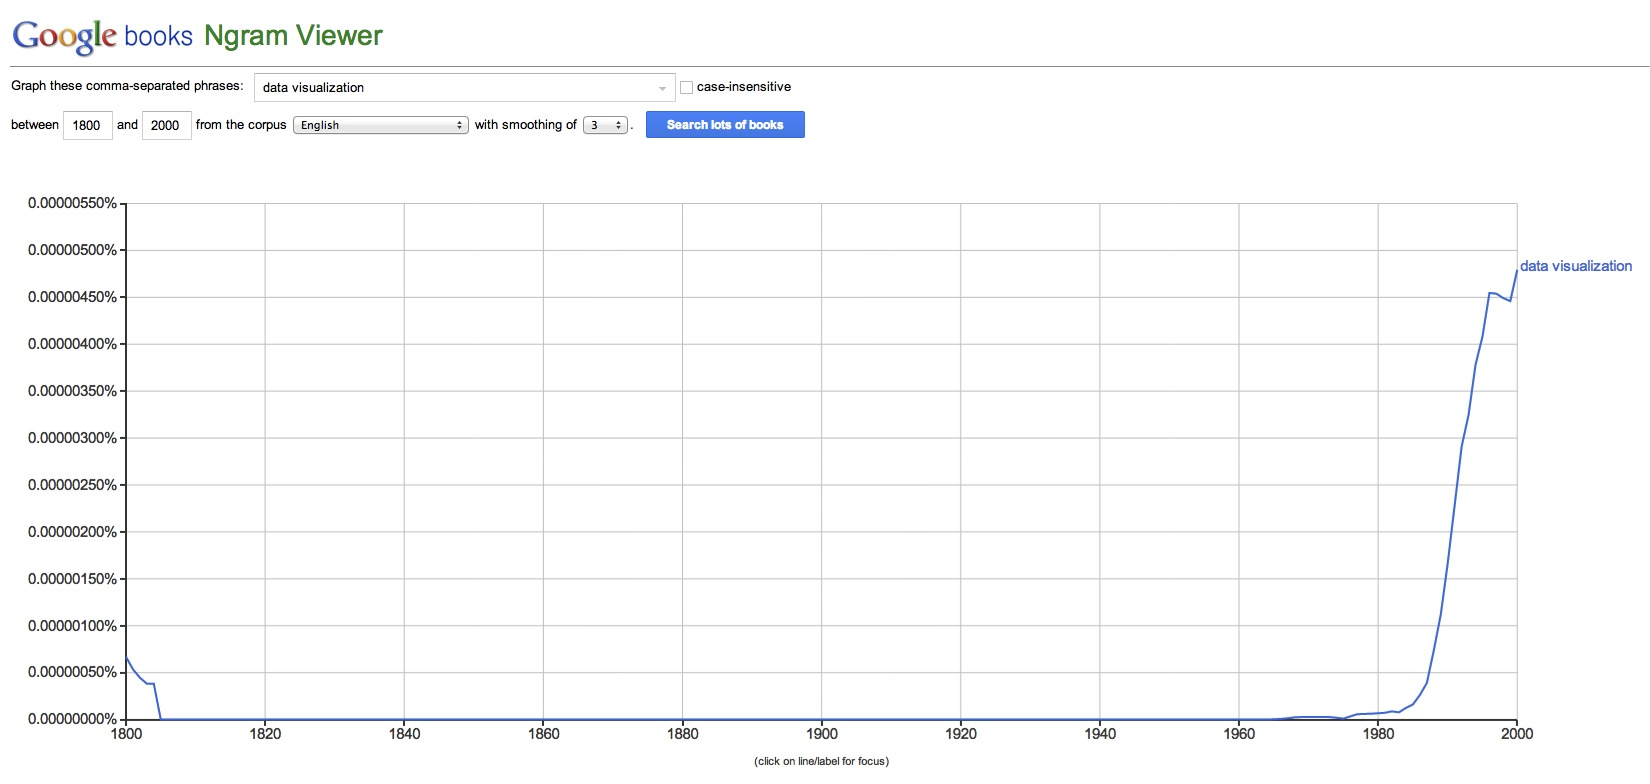 Figure 1: Data visualization mentions in books over time                                                                                 Source  : Google Ngram Viewer